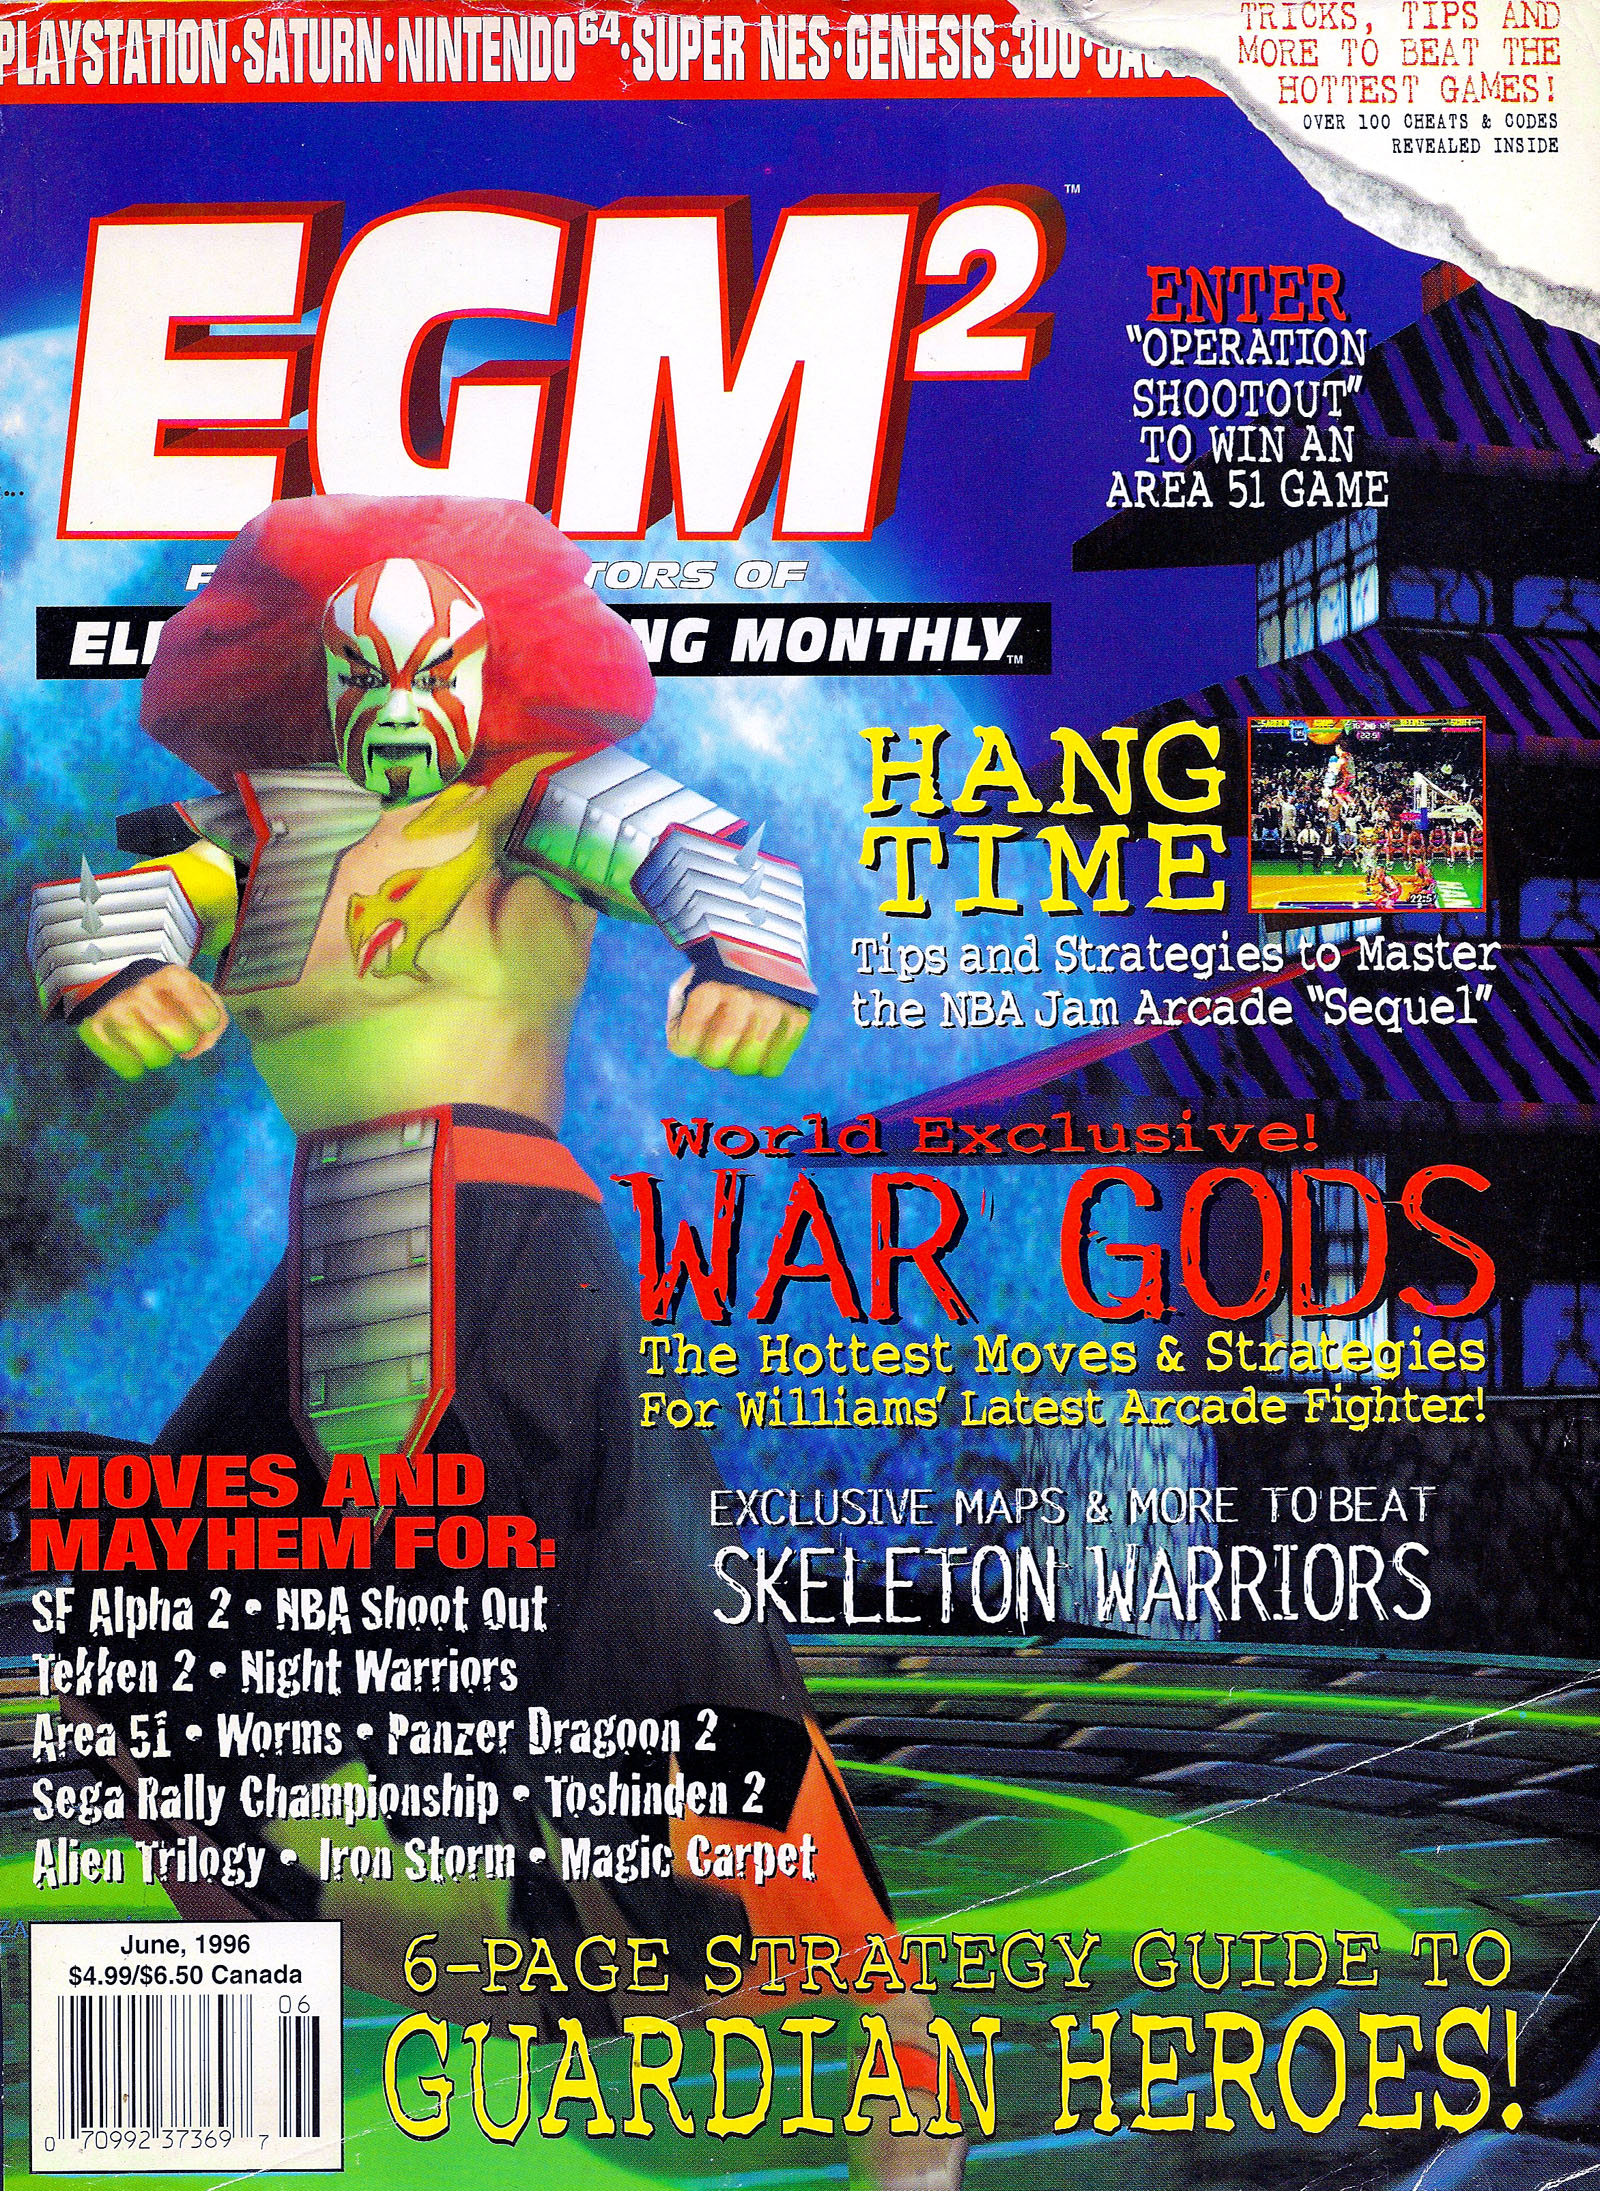 egm2-issue-024-june-1996-page-001